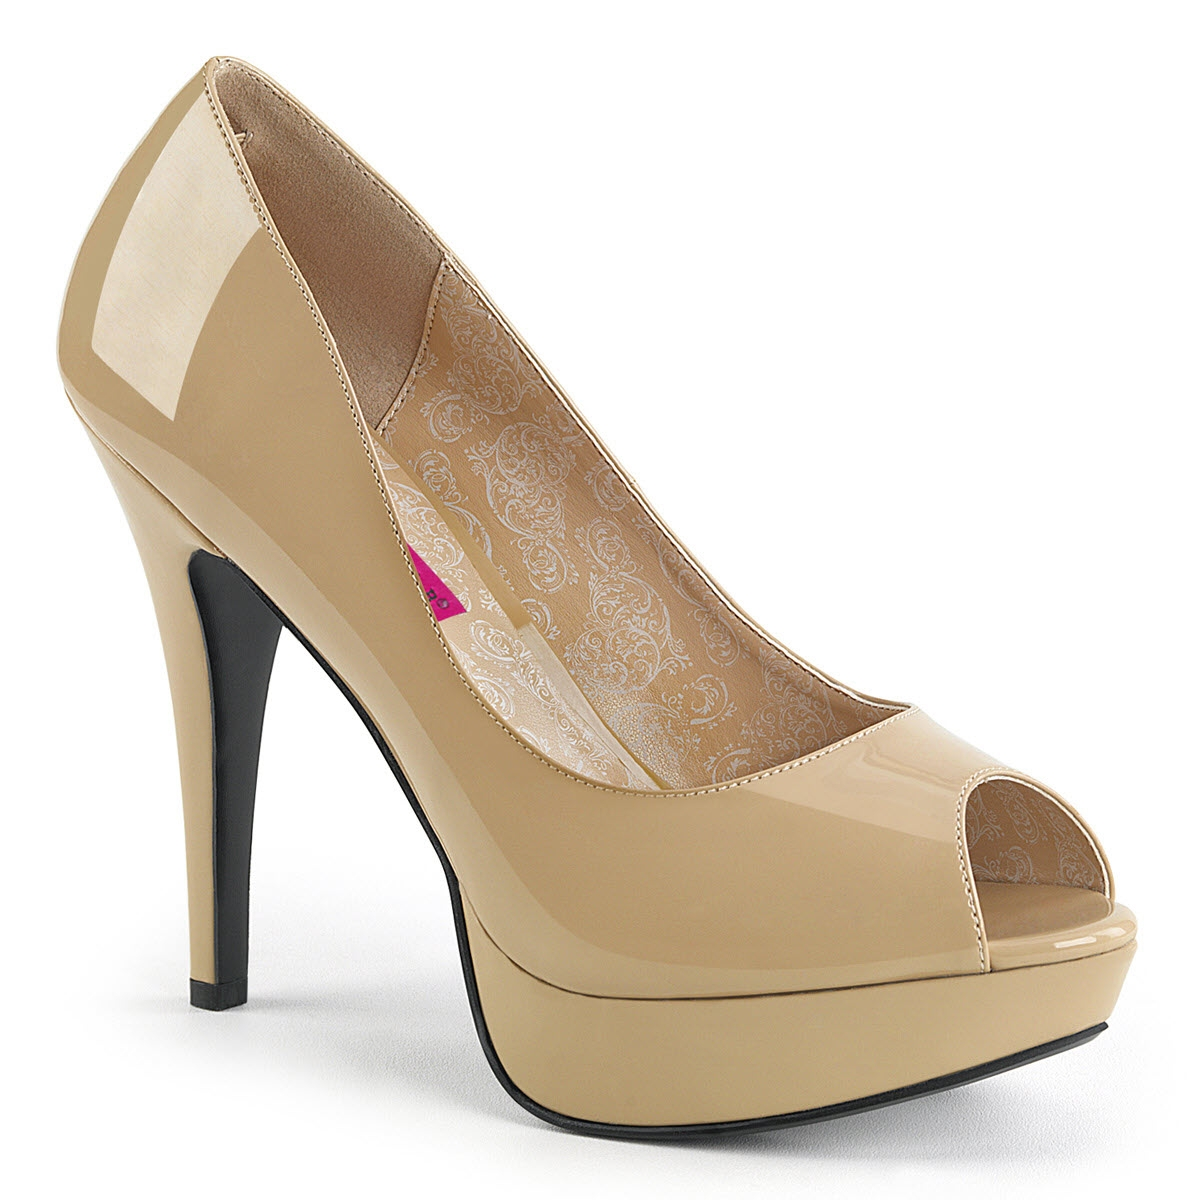 Image of Peep-Toe Pumps, CHLOE-01, Lack, Beige-13